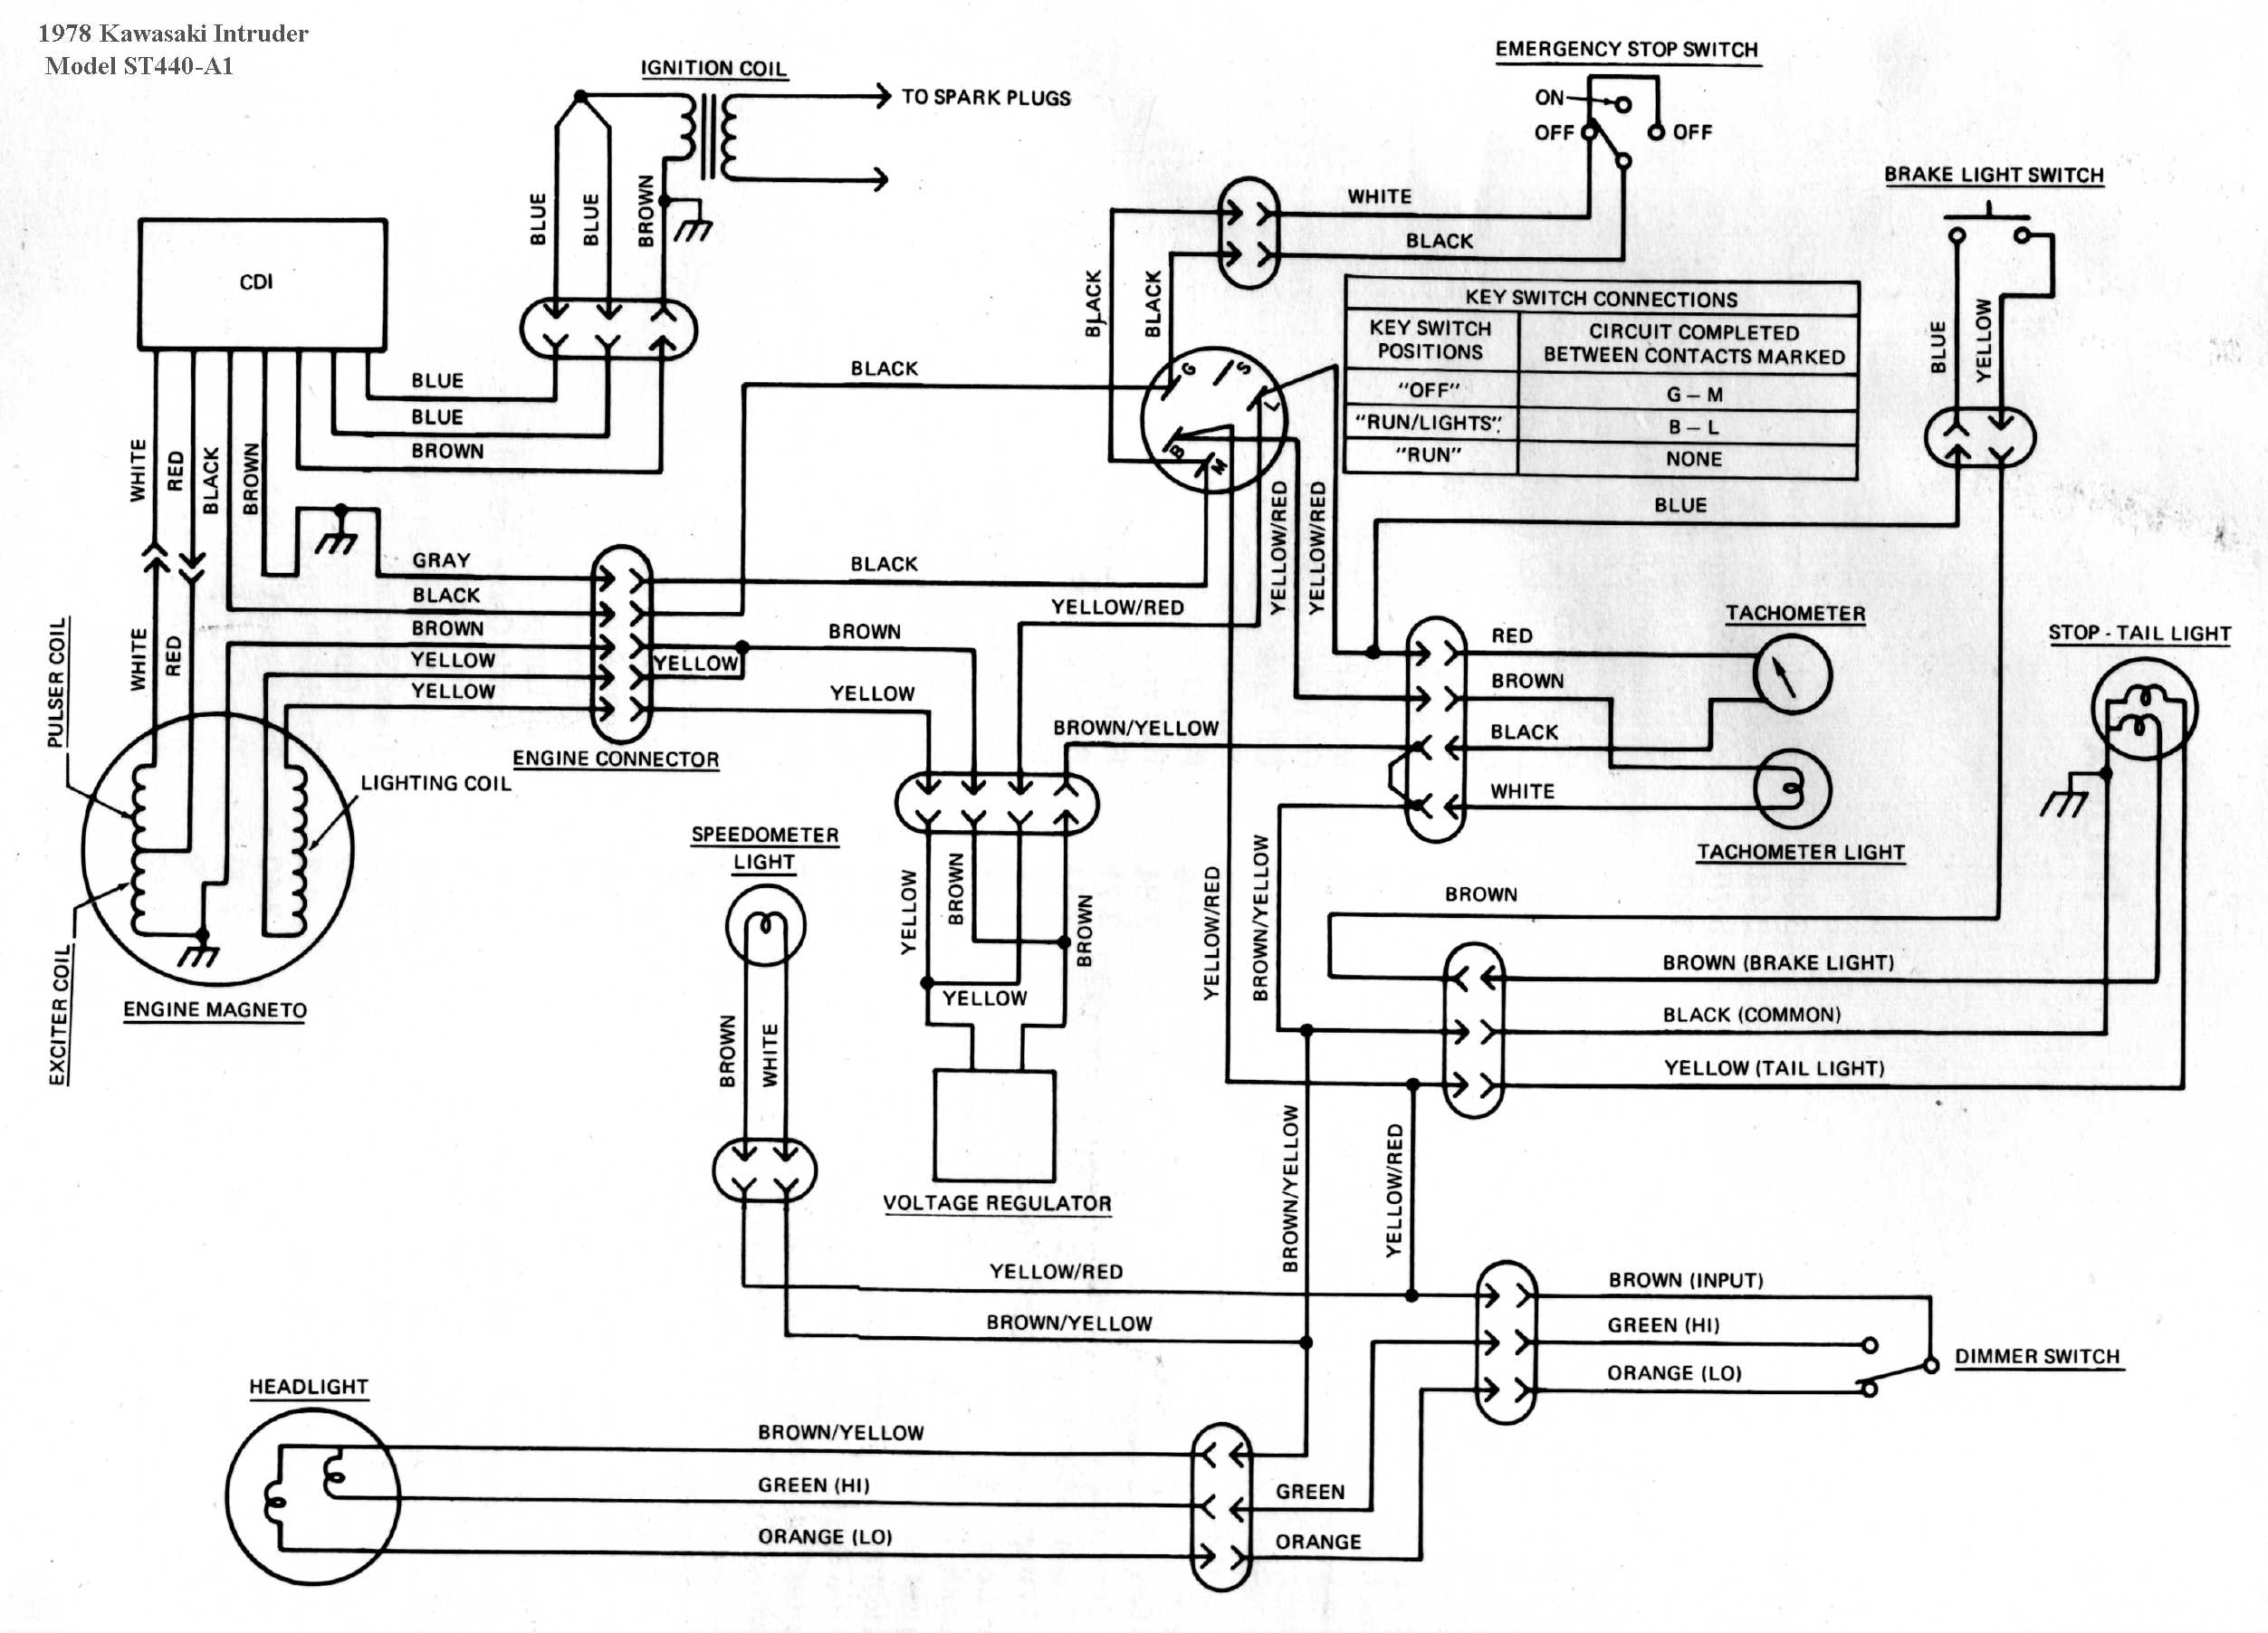 Srx 700 Wiring Diagram Another Blog About Ford Xc Snowmobile Diagrams